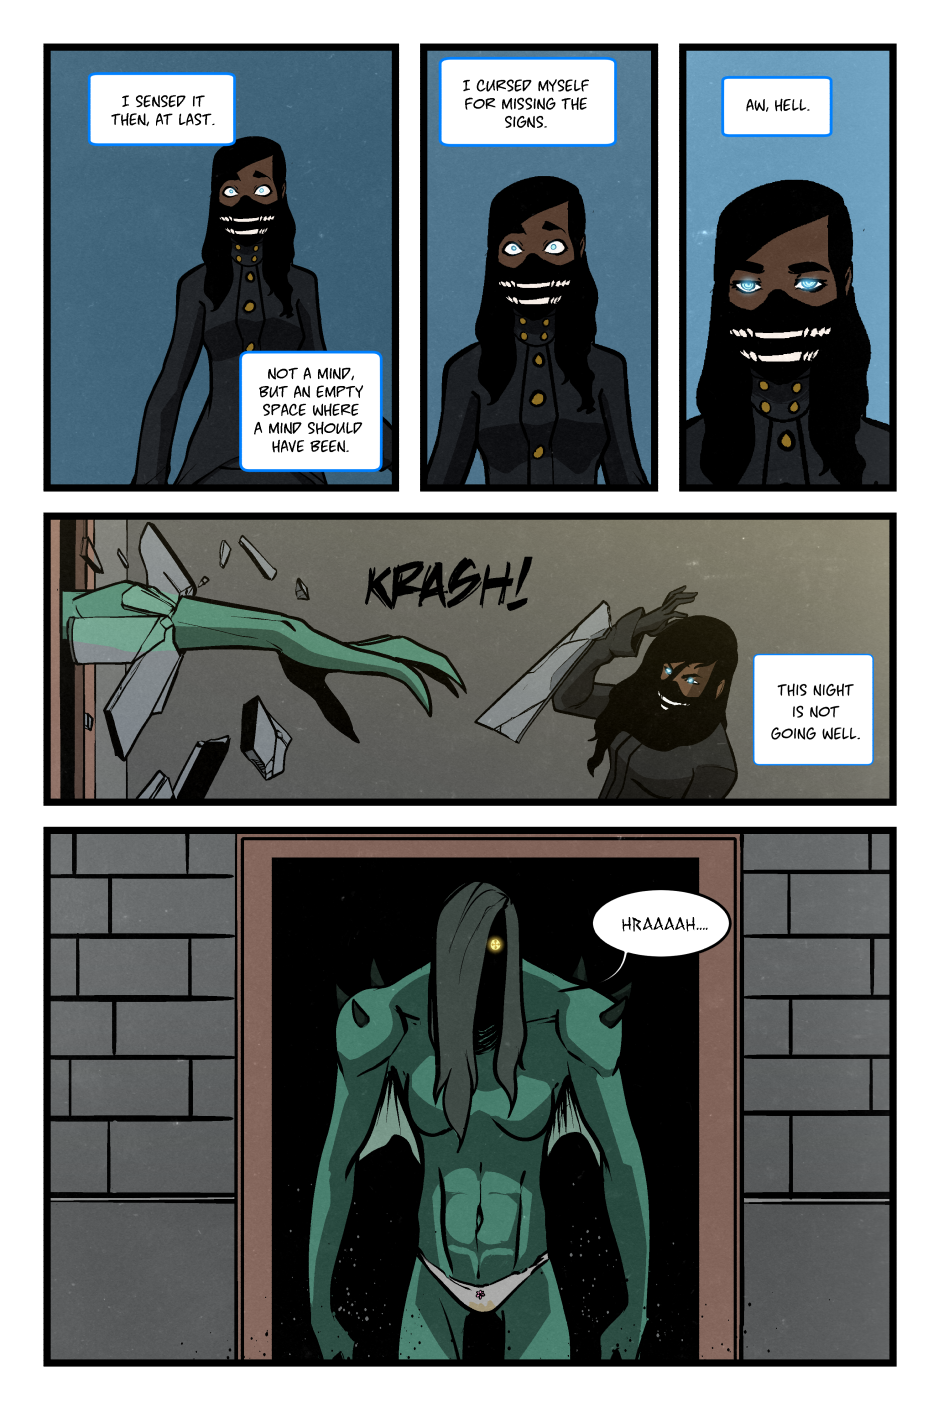 ToW01pg20